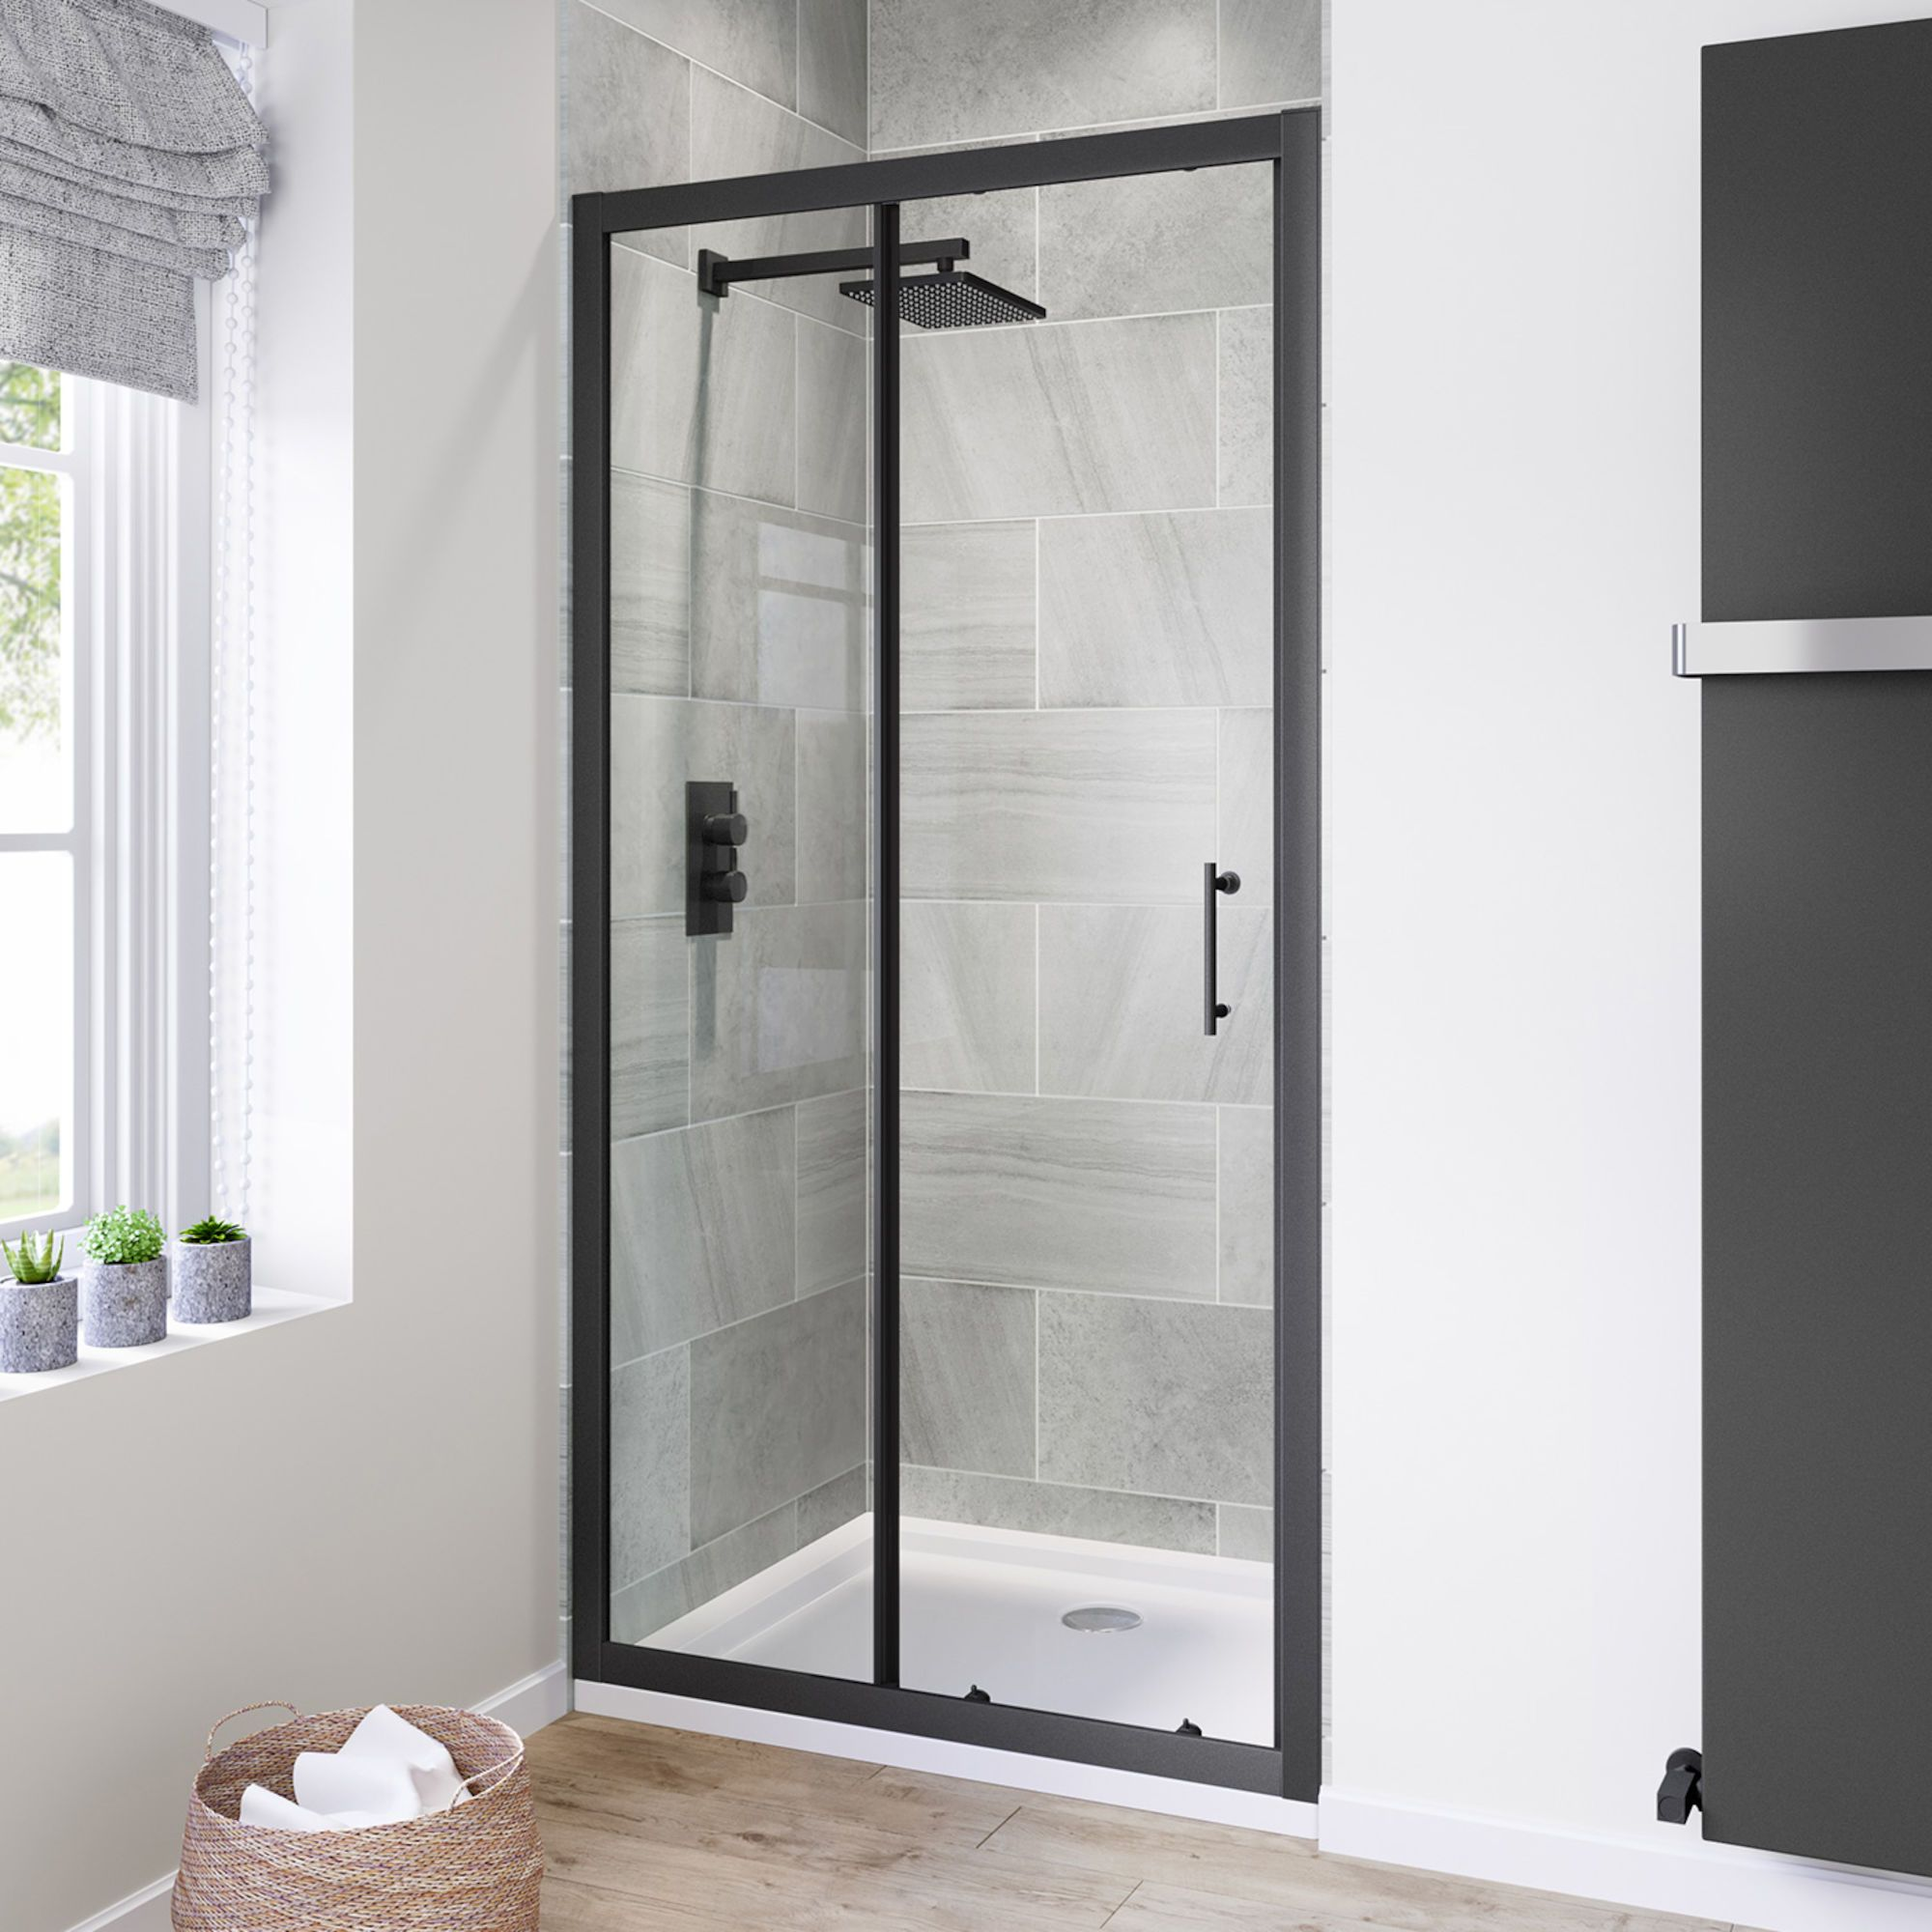 1000mm 6mm Black Frame Sliding Shower Door Black Shower Doors Shower Remodel Sliding Shower Door